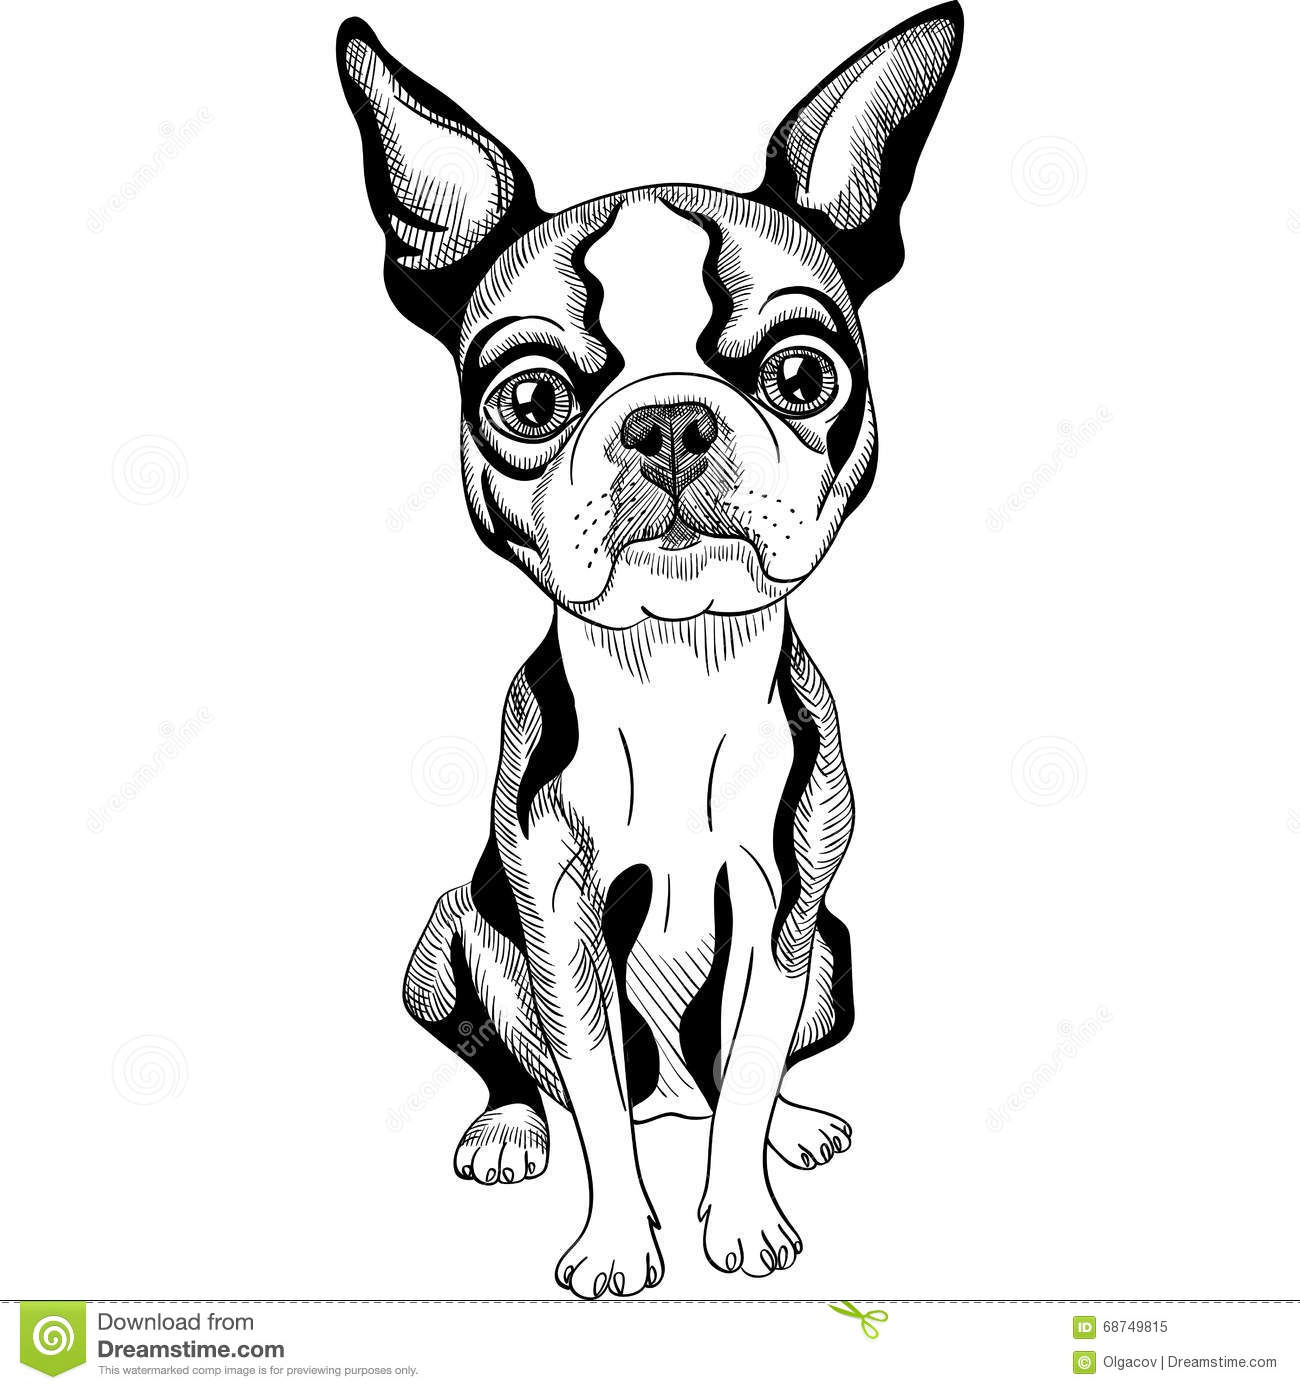 how to draw a boston terrier dog